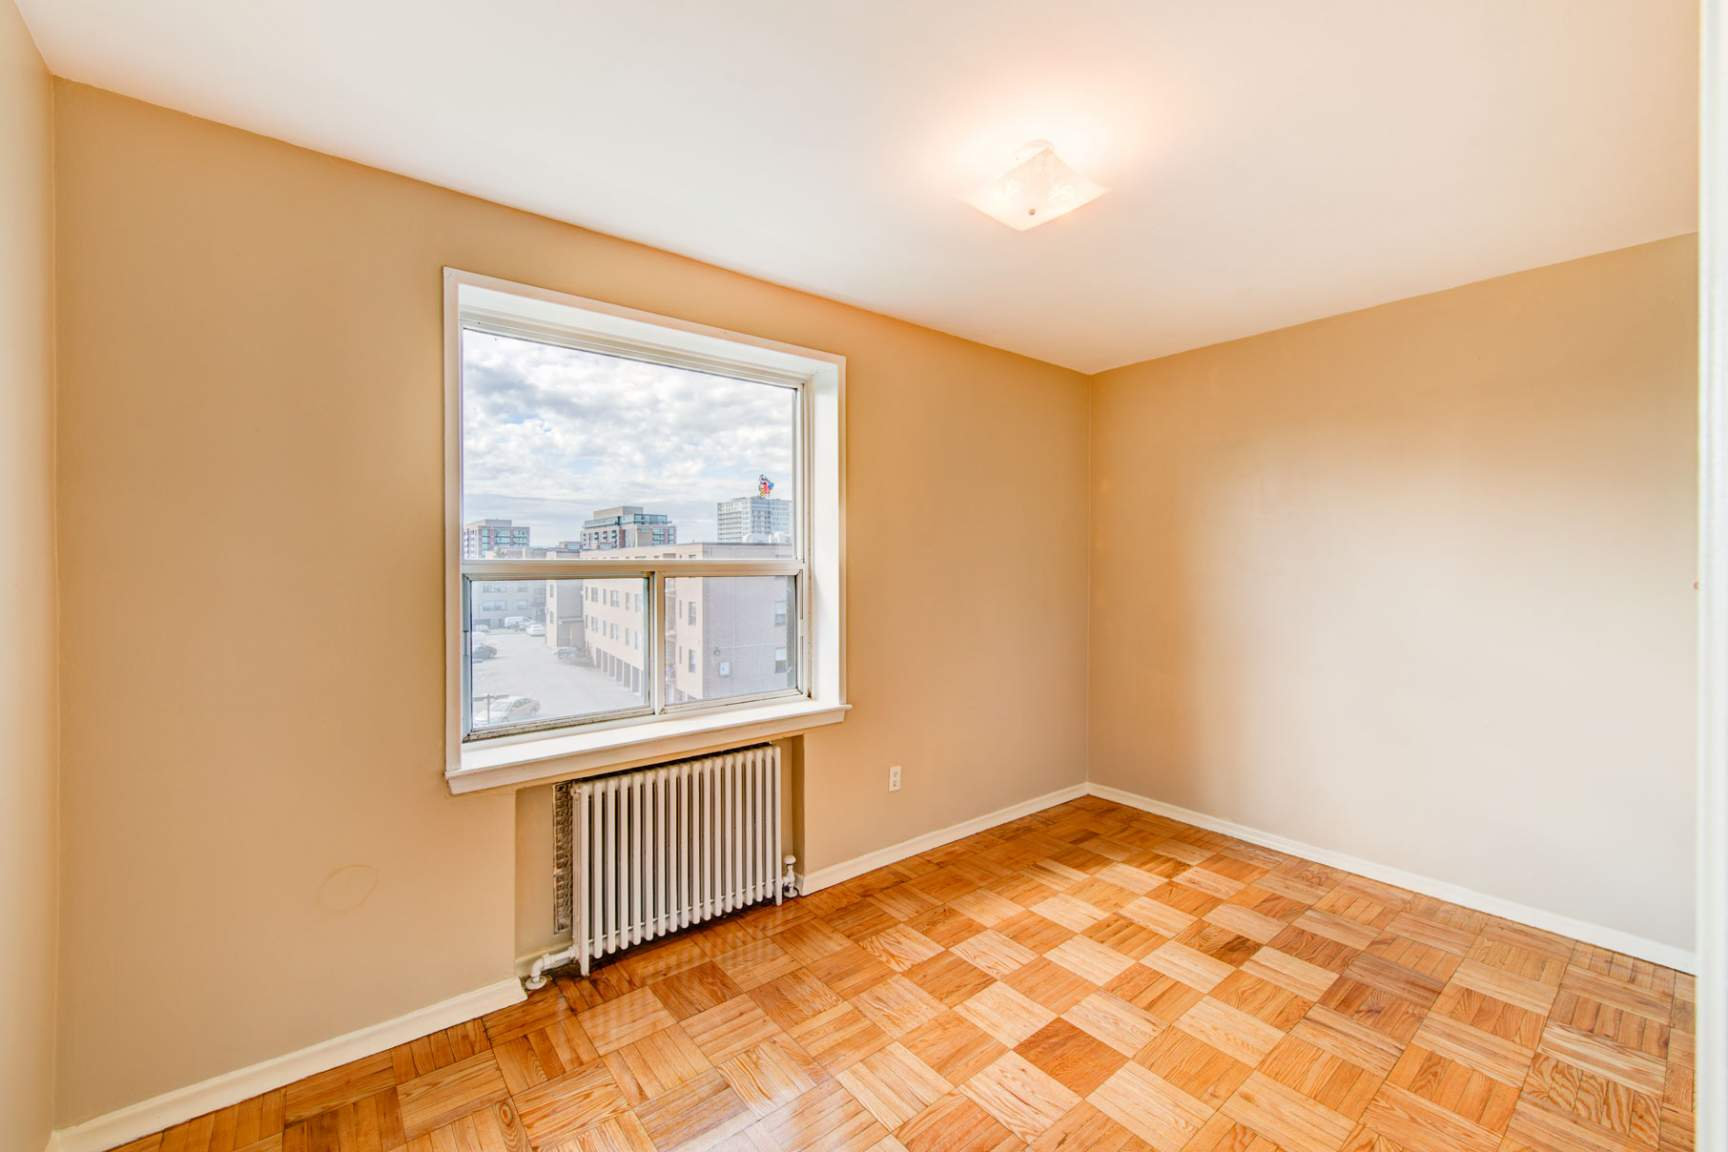 1 bedroom Apartments for rent in Toronto at Faywood - Vinci Community - Photo 11 - RentersPages – L402215